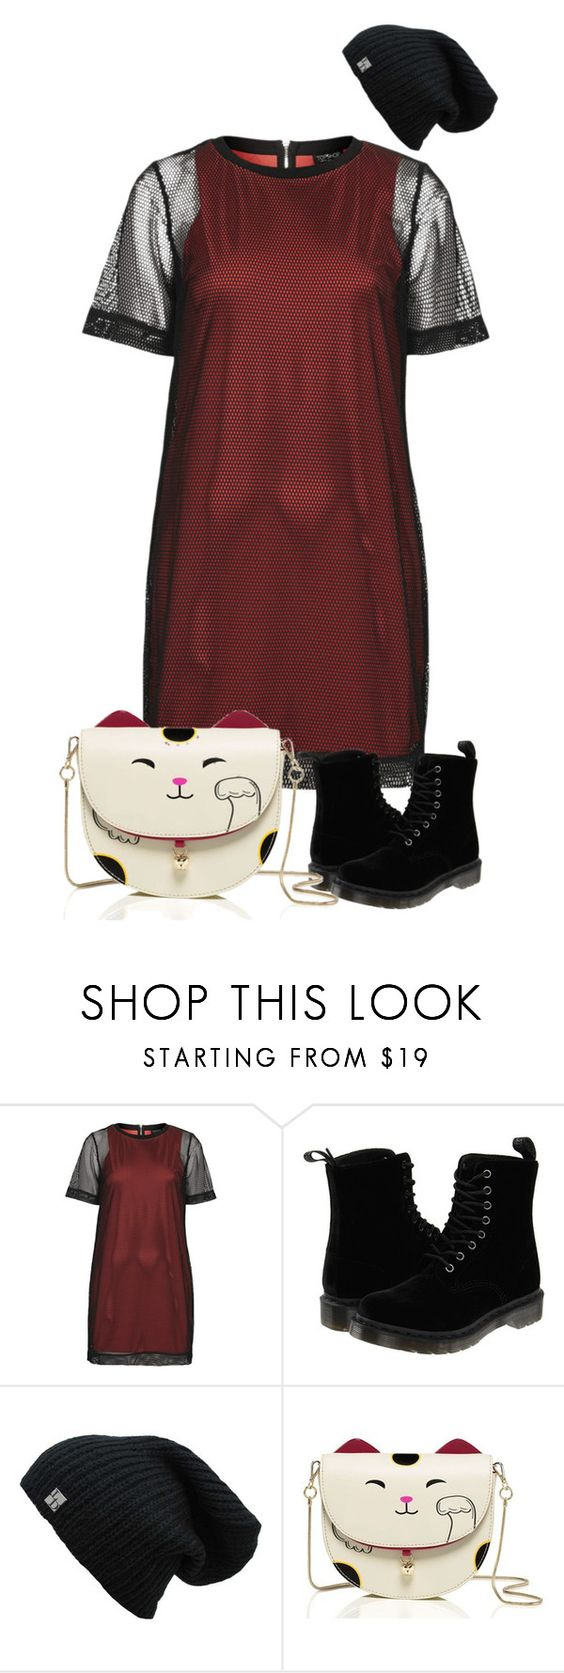 """""""Untitled #52"""" by arianasnickerss ❤ liked on Polyvore featuring мода, Topshop и Dr. Martens"""